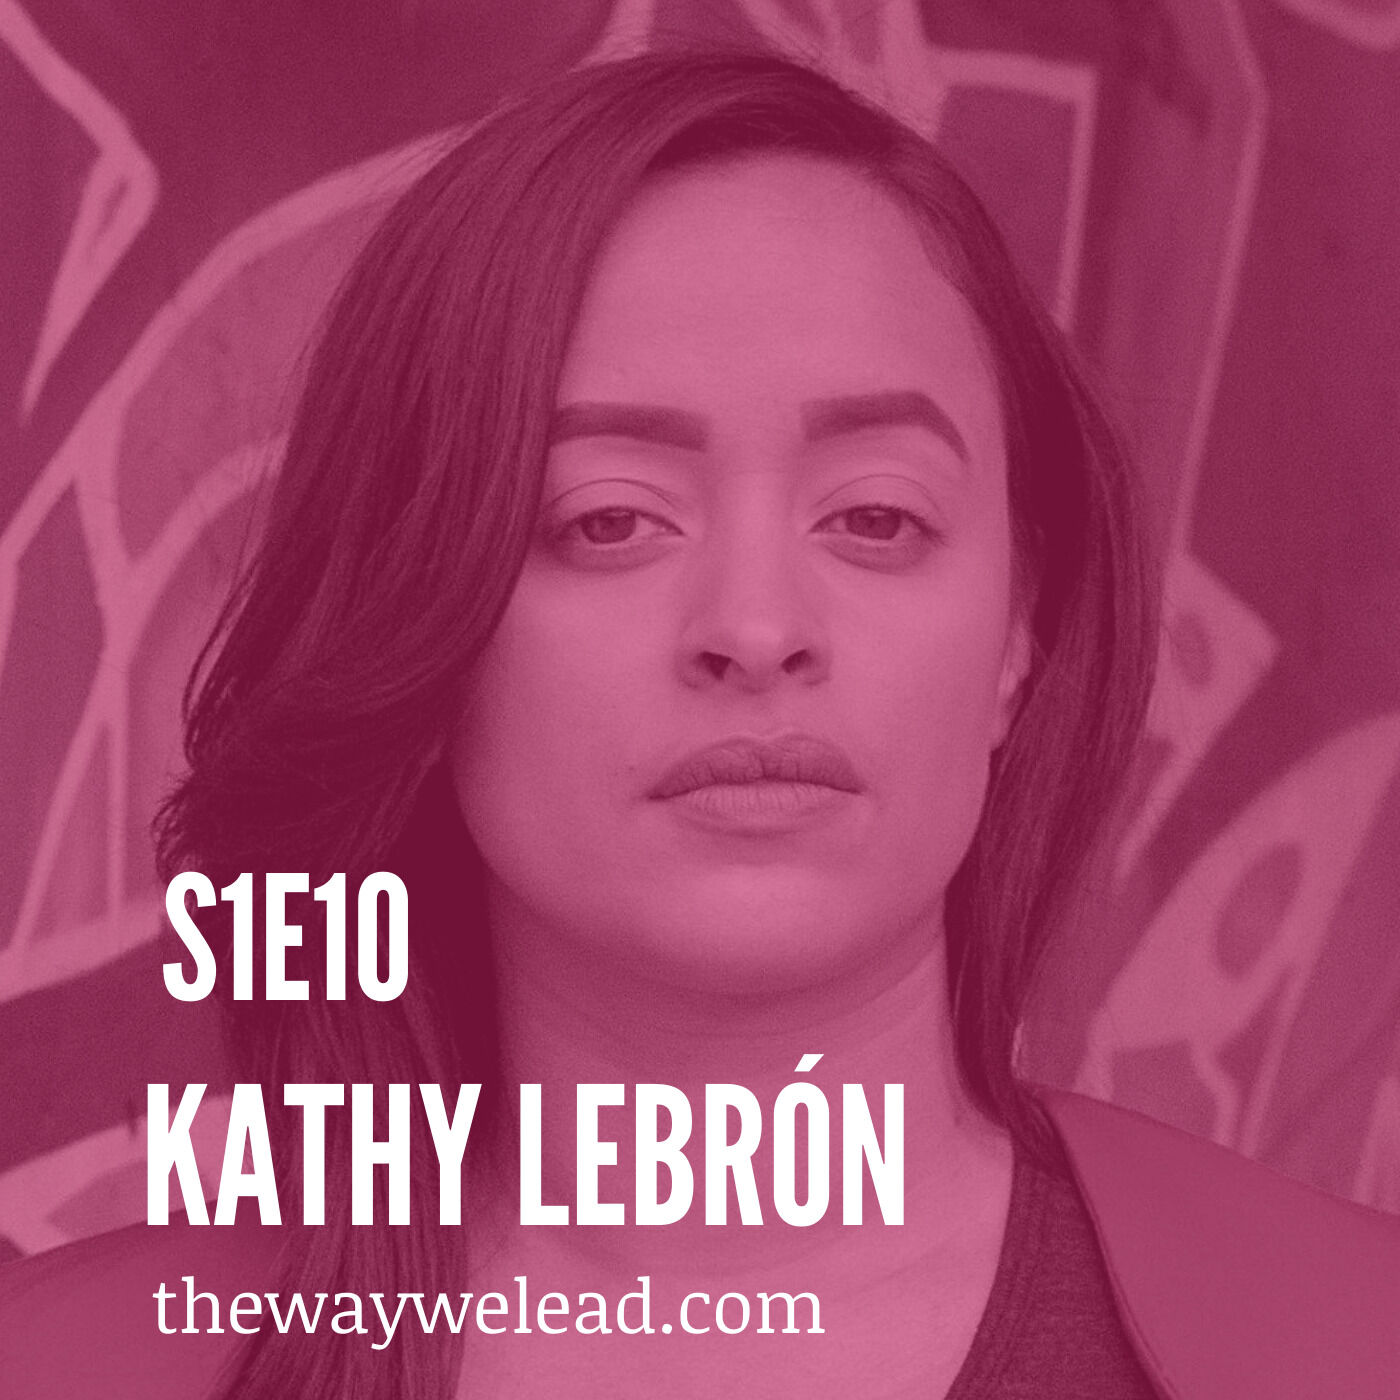 S1E10 Developing Social Justice Curriculum for Schools with Kathy Lebrón